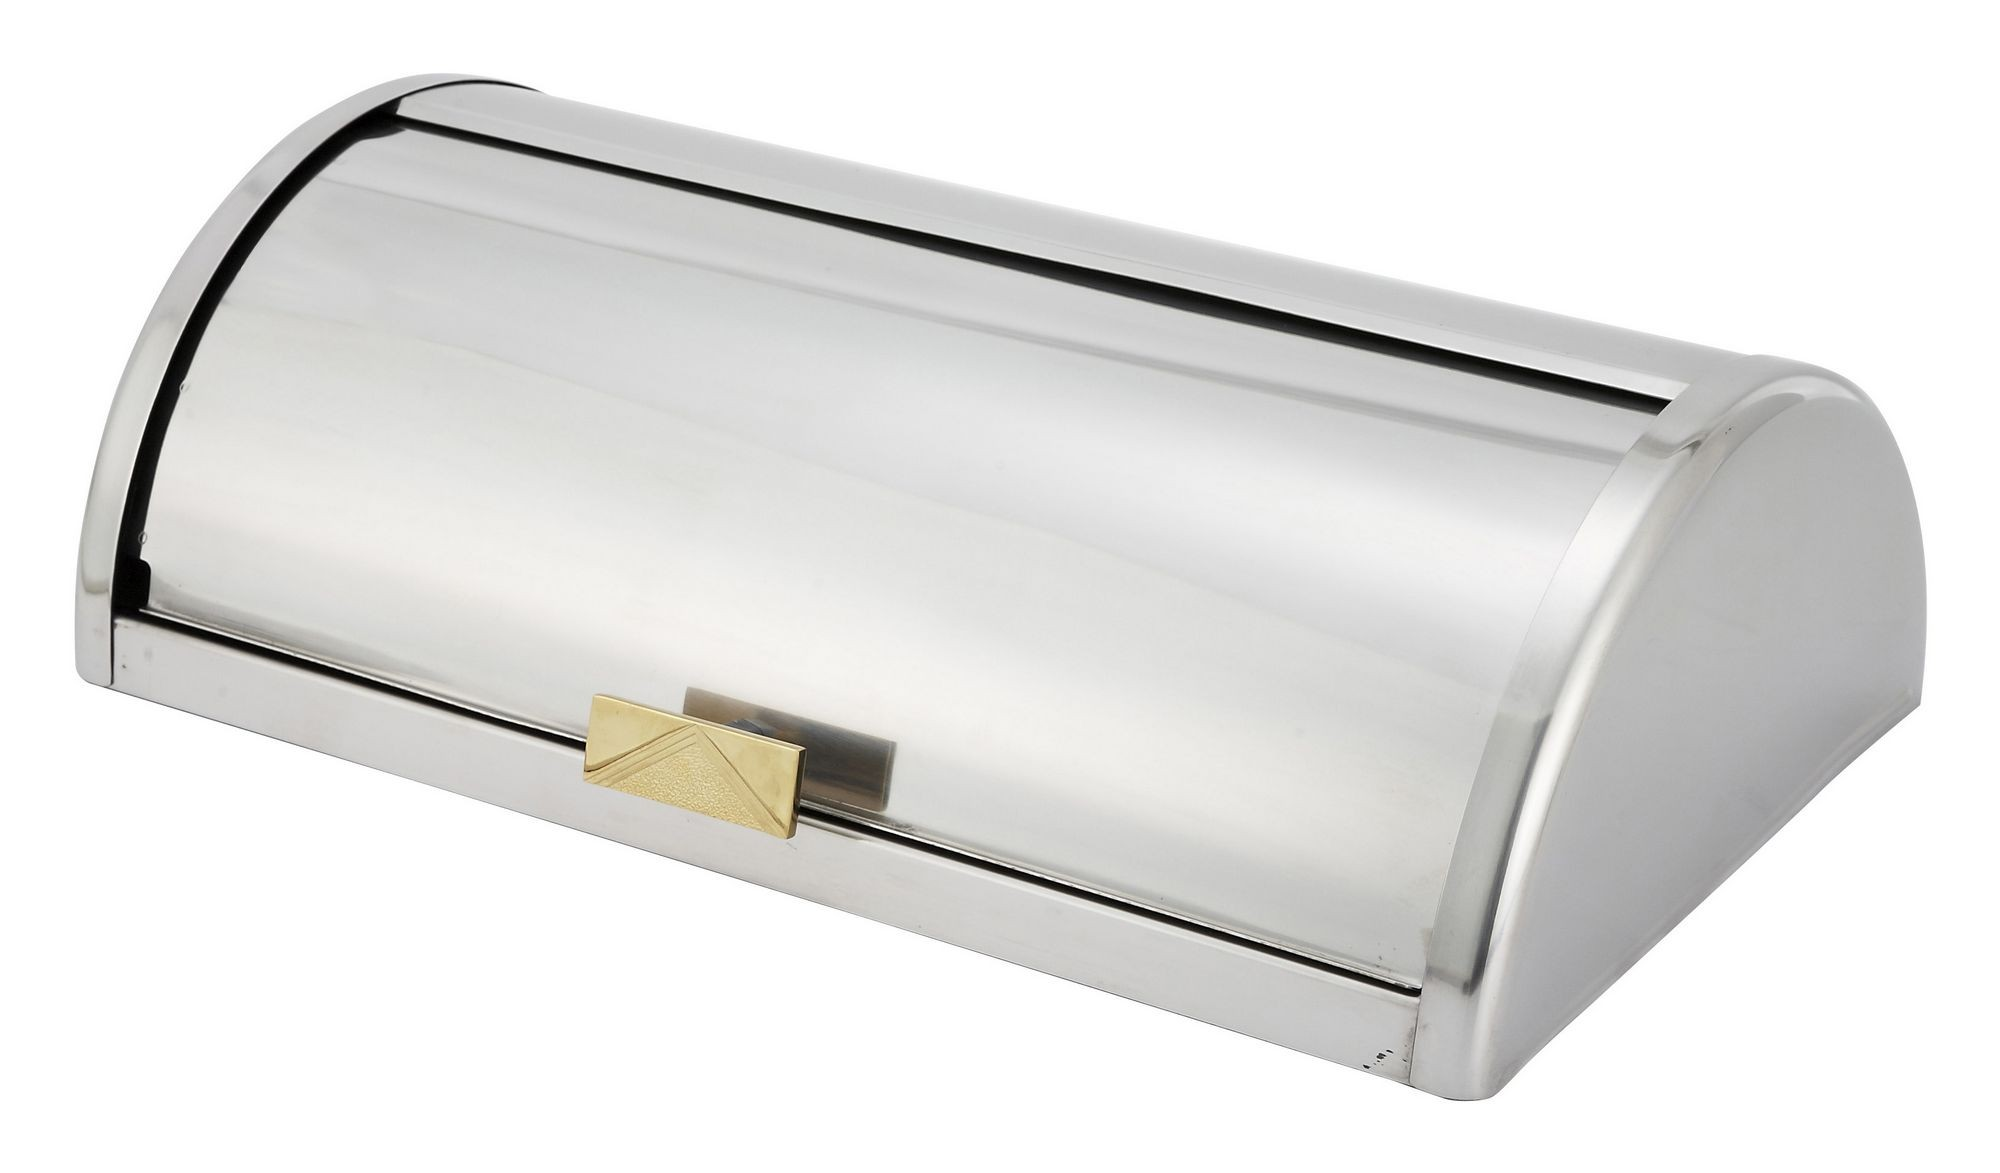 Stainless Roll-top Chafer Cover (for dome lid full size chafer)